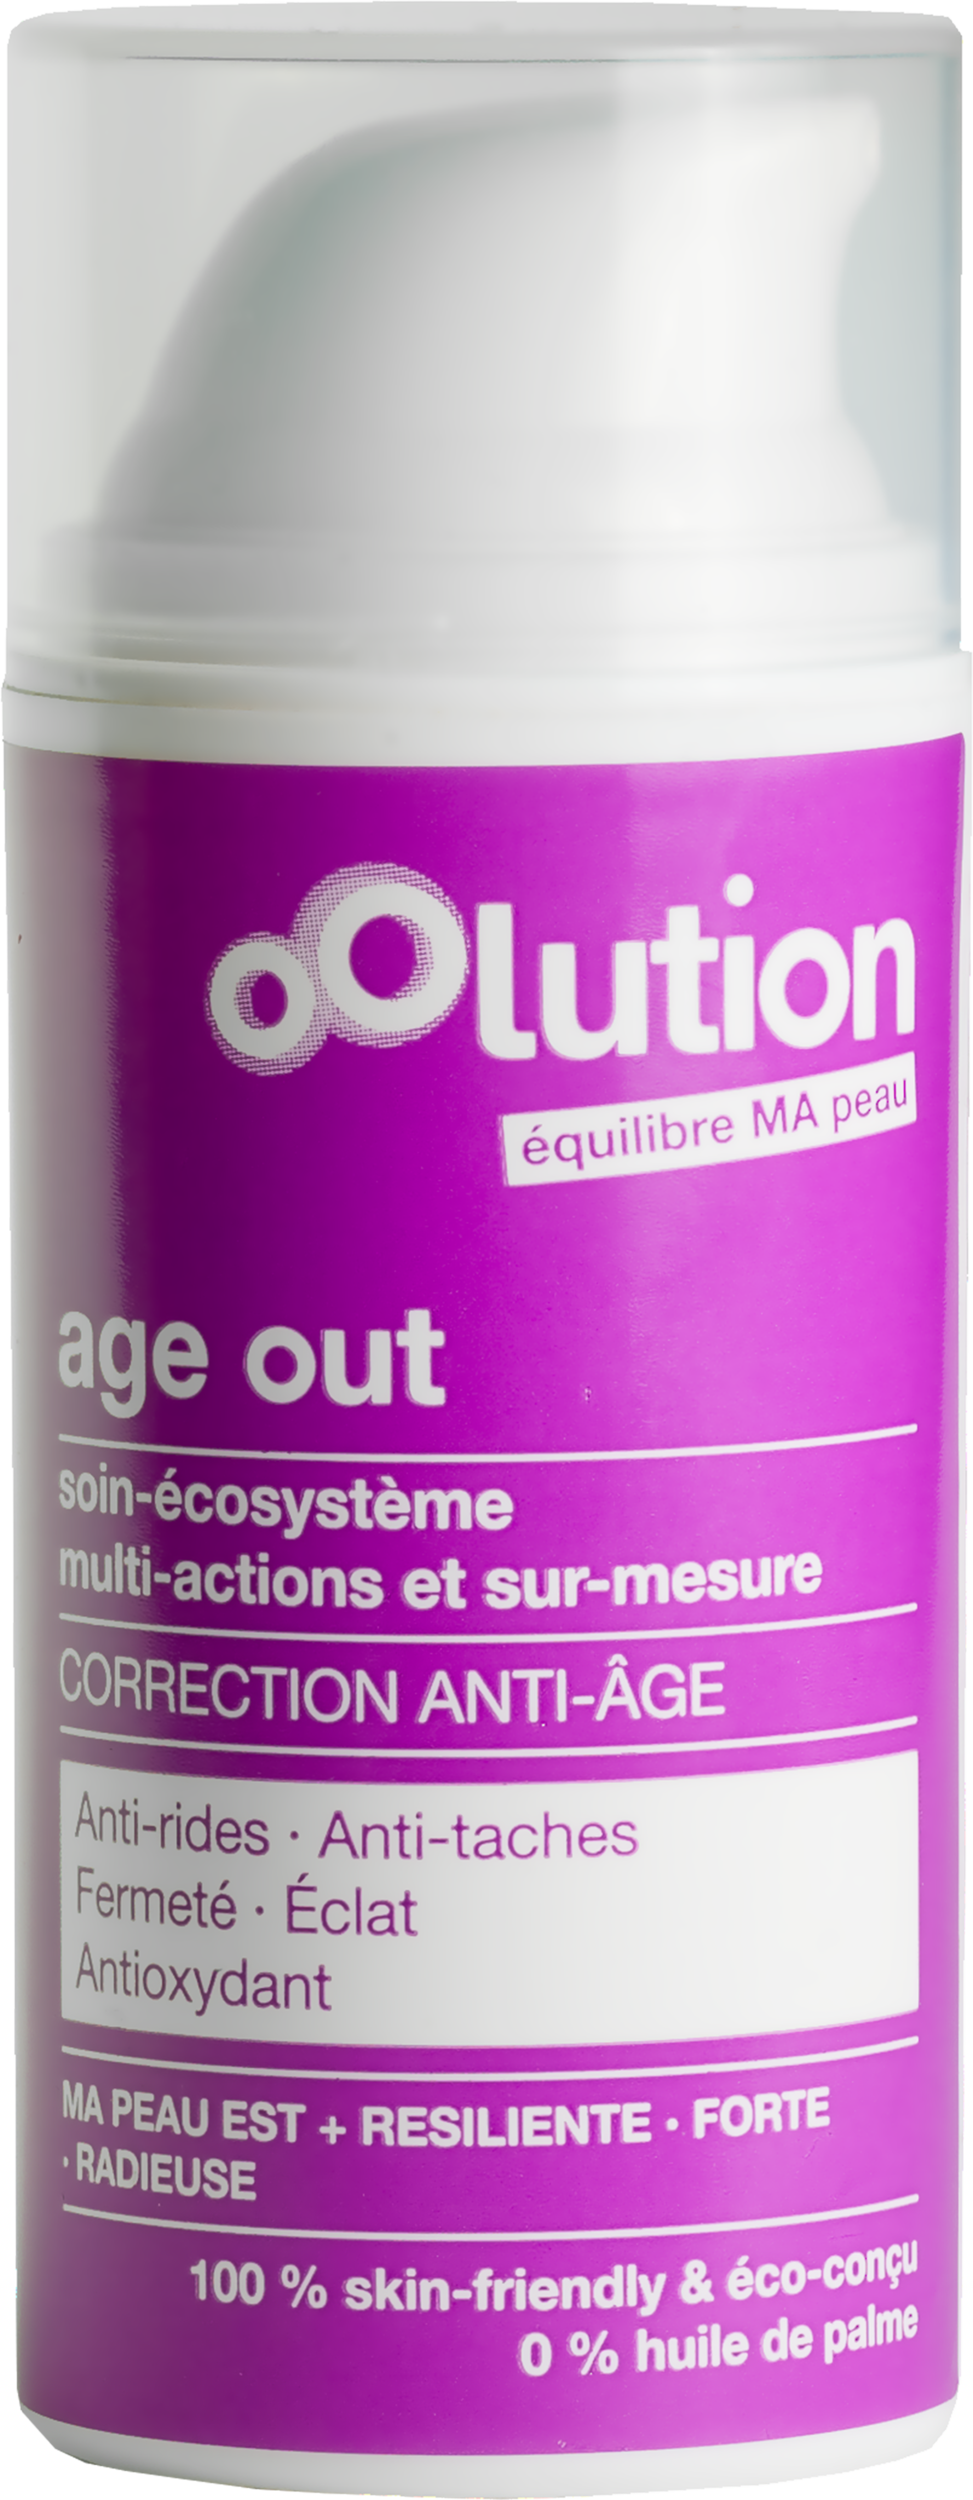 Doux Good - Oolution - Age out - soin visage correcteur anti-age